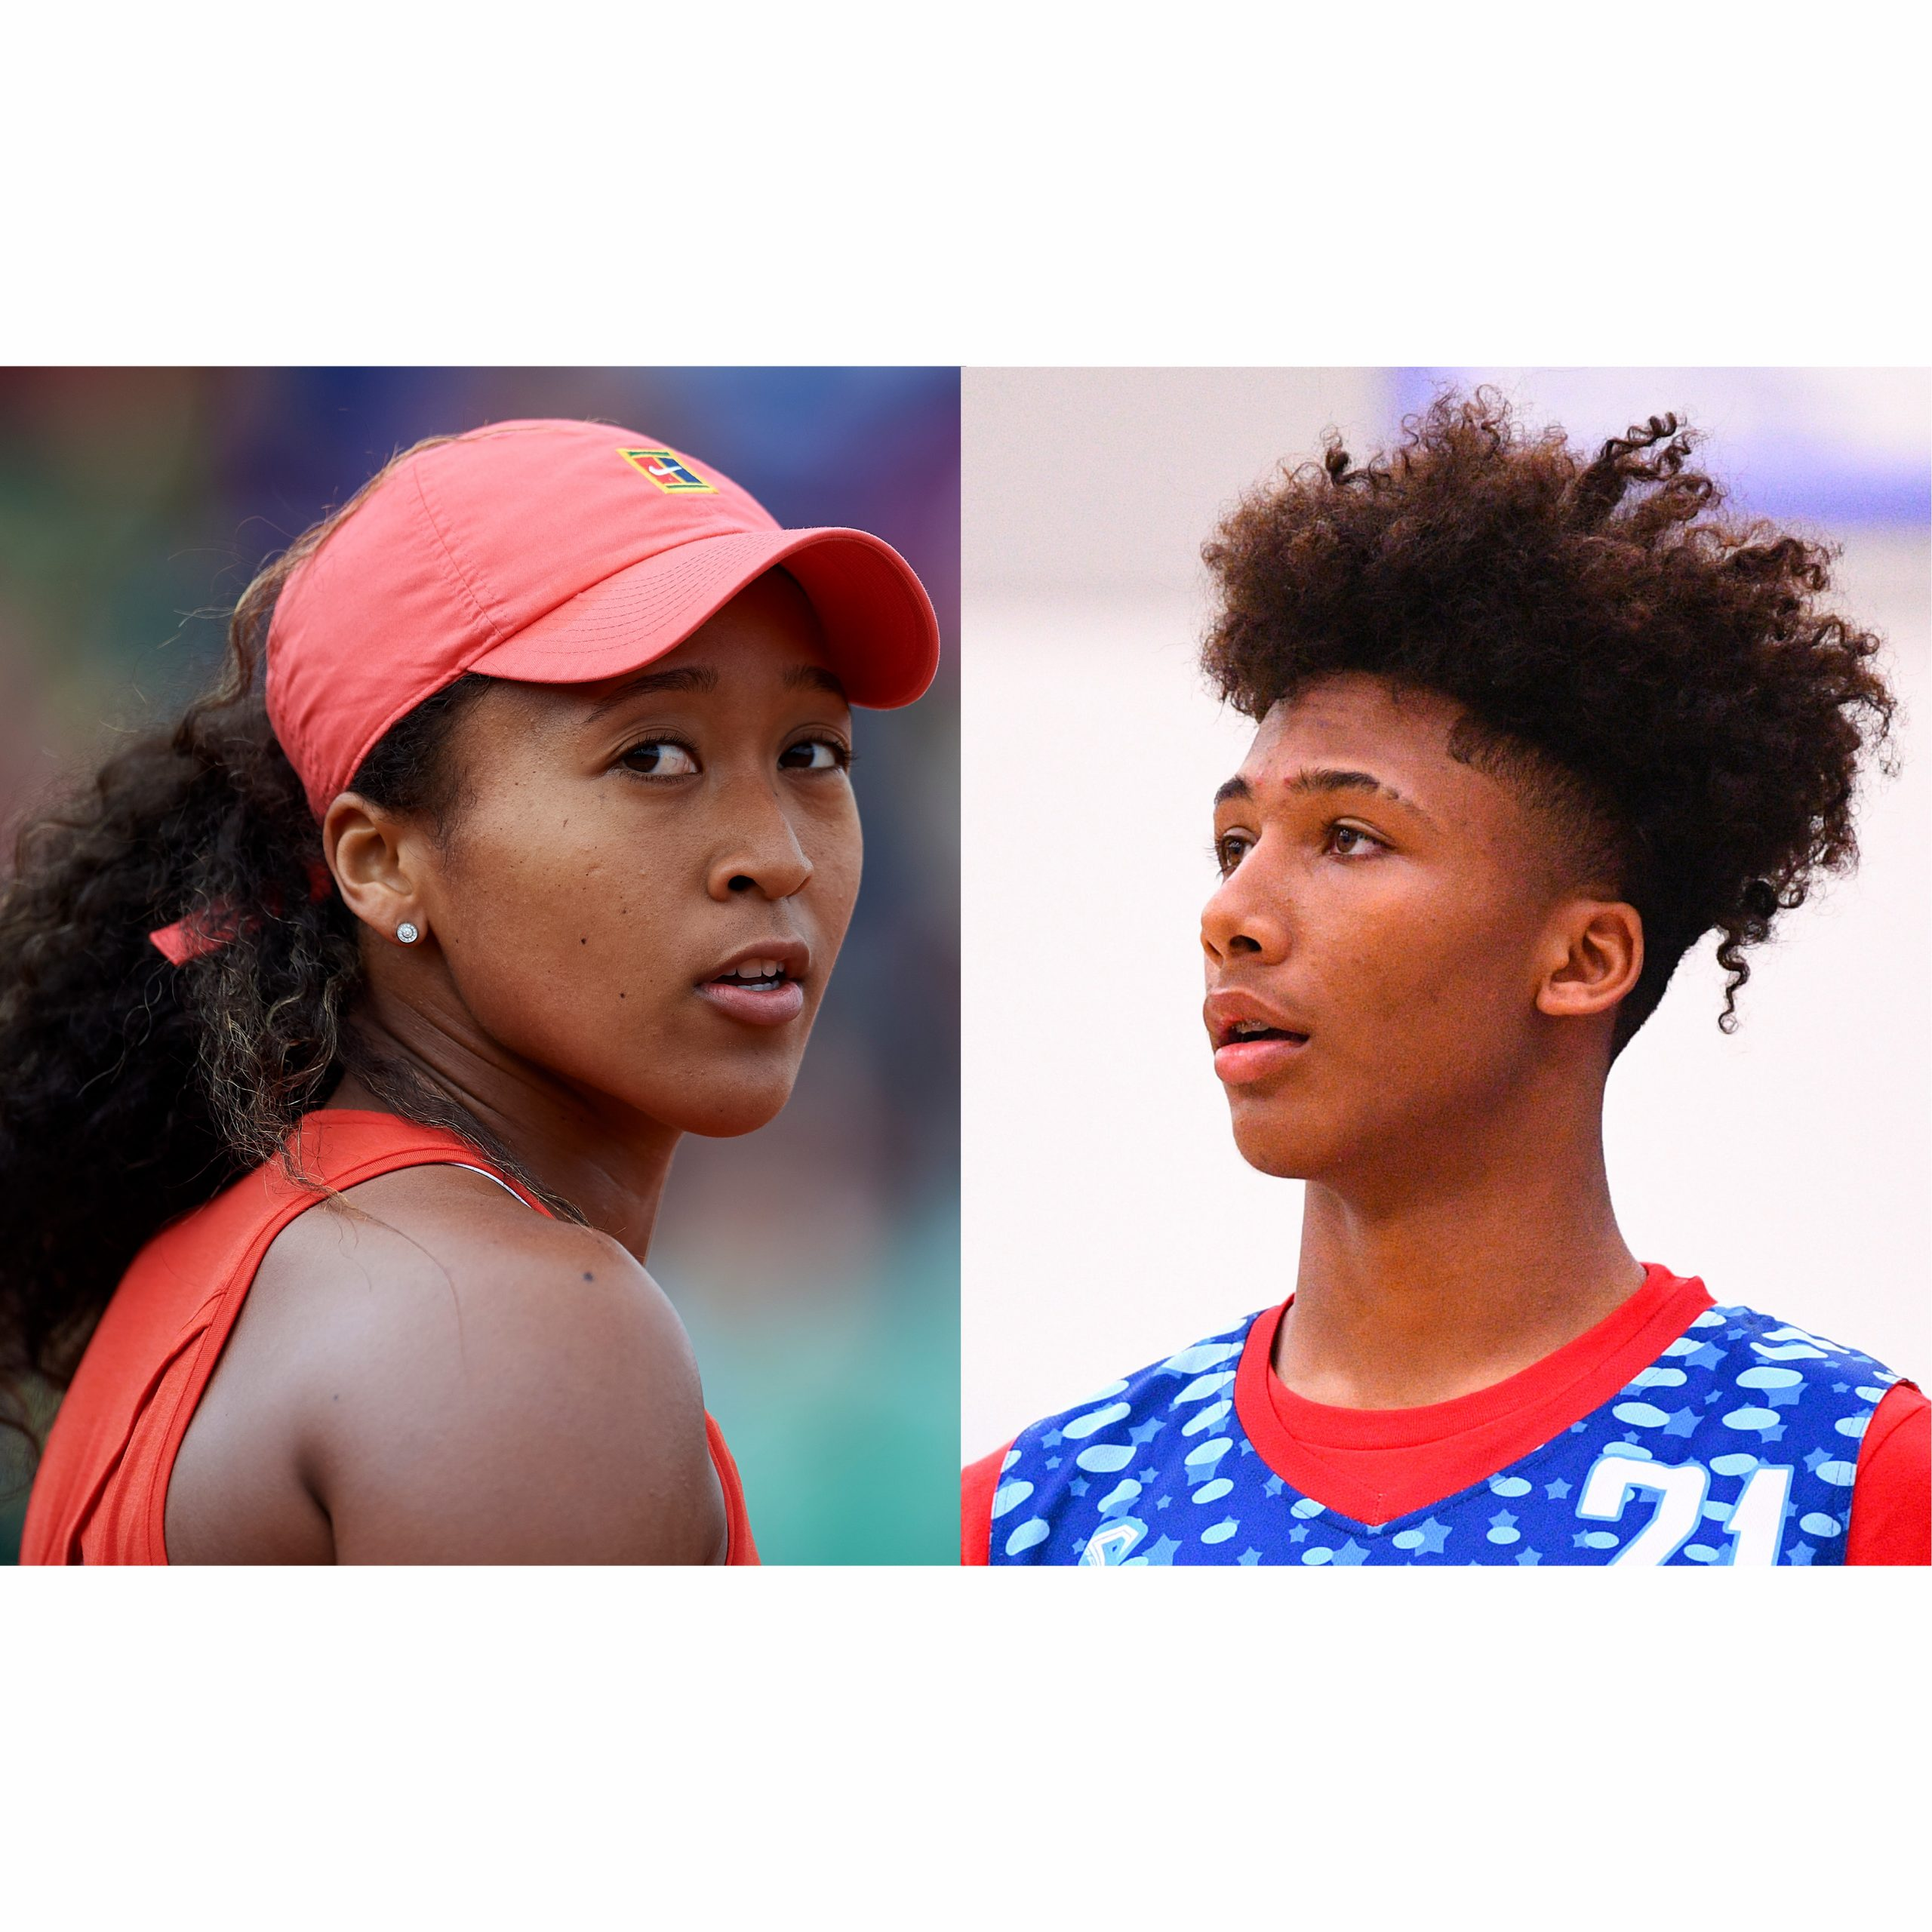 Mikey Williams Interview with Osaka Naomi: 'We are young blacks athletes. We Spotlights On Us'